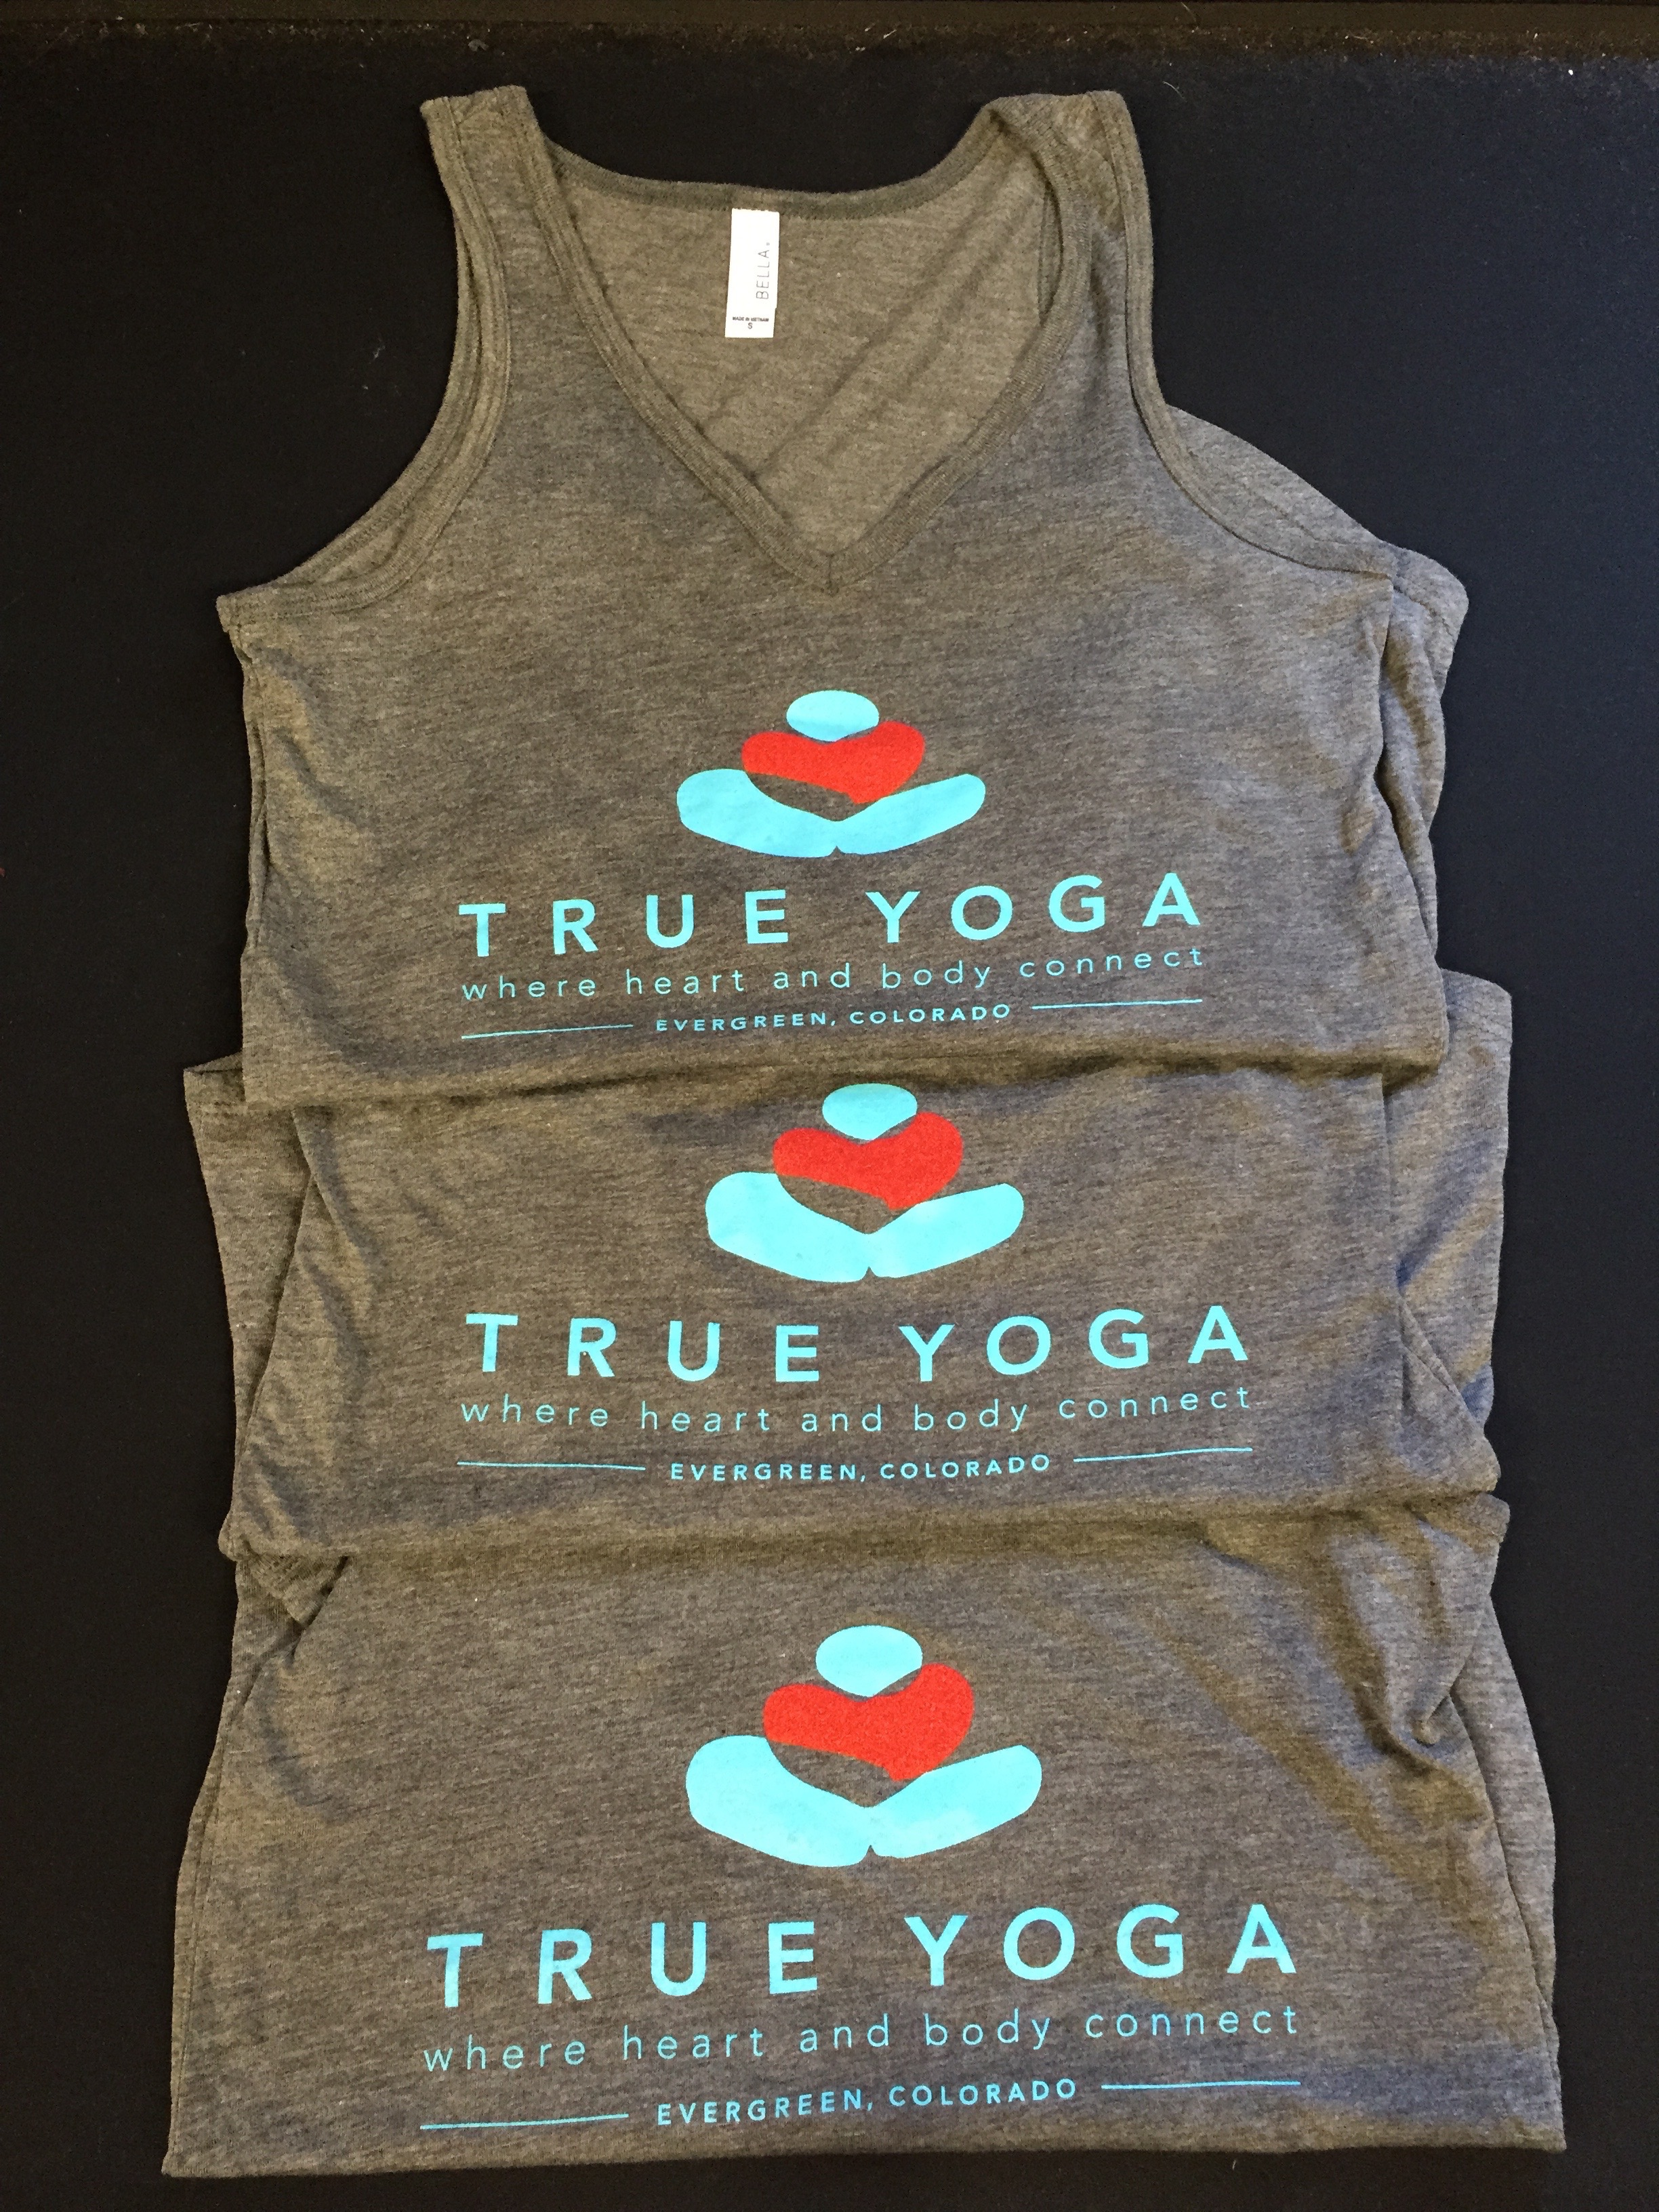 True Yoga screen print